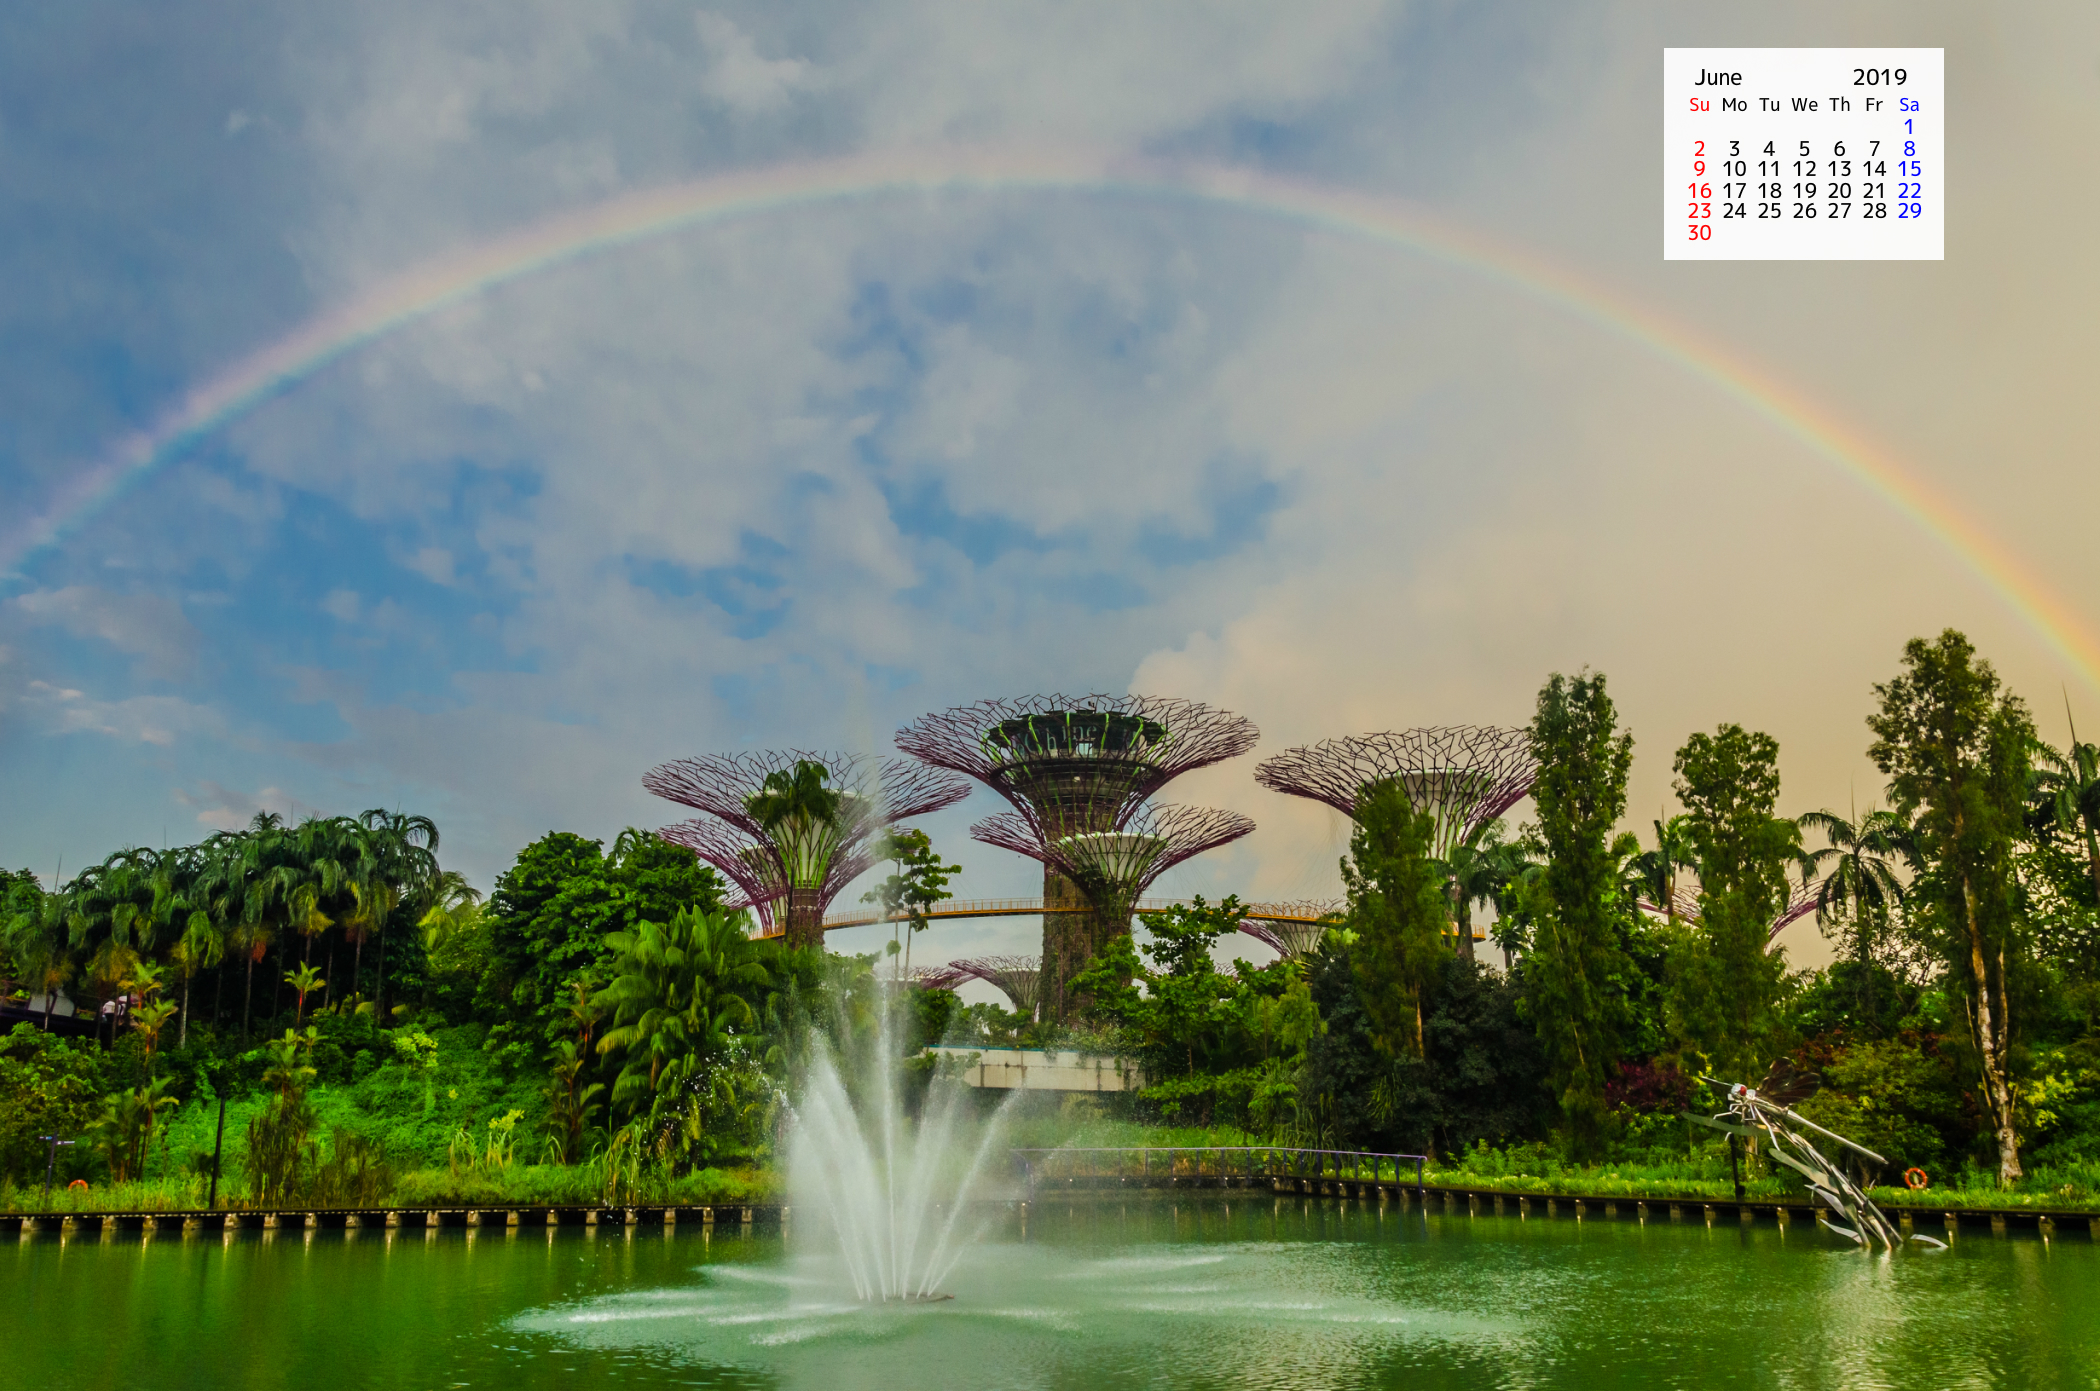 Free Download June  2019 Wallpaper Calendar Rainbow Supertree Grove Singapore